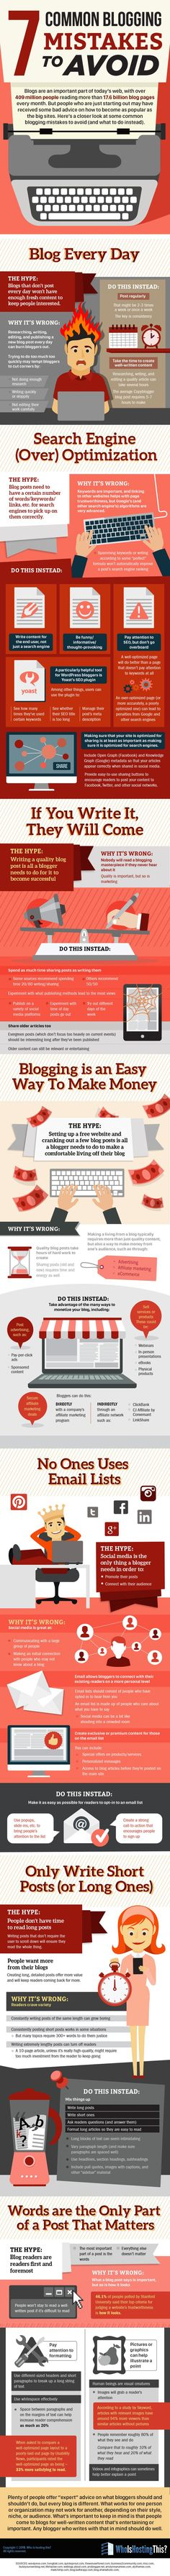 7 Common Blogging Mistakes to Avoid #infographic #Blogging